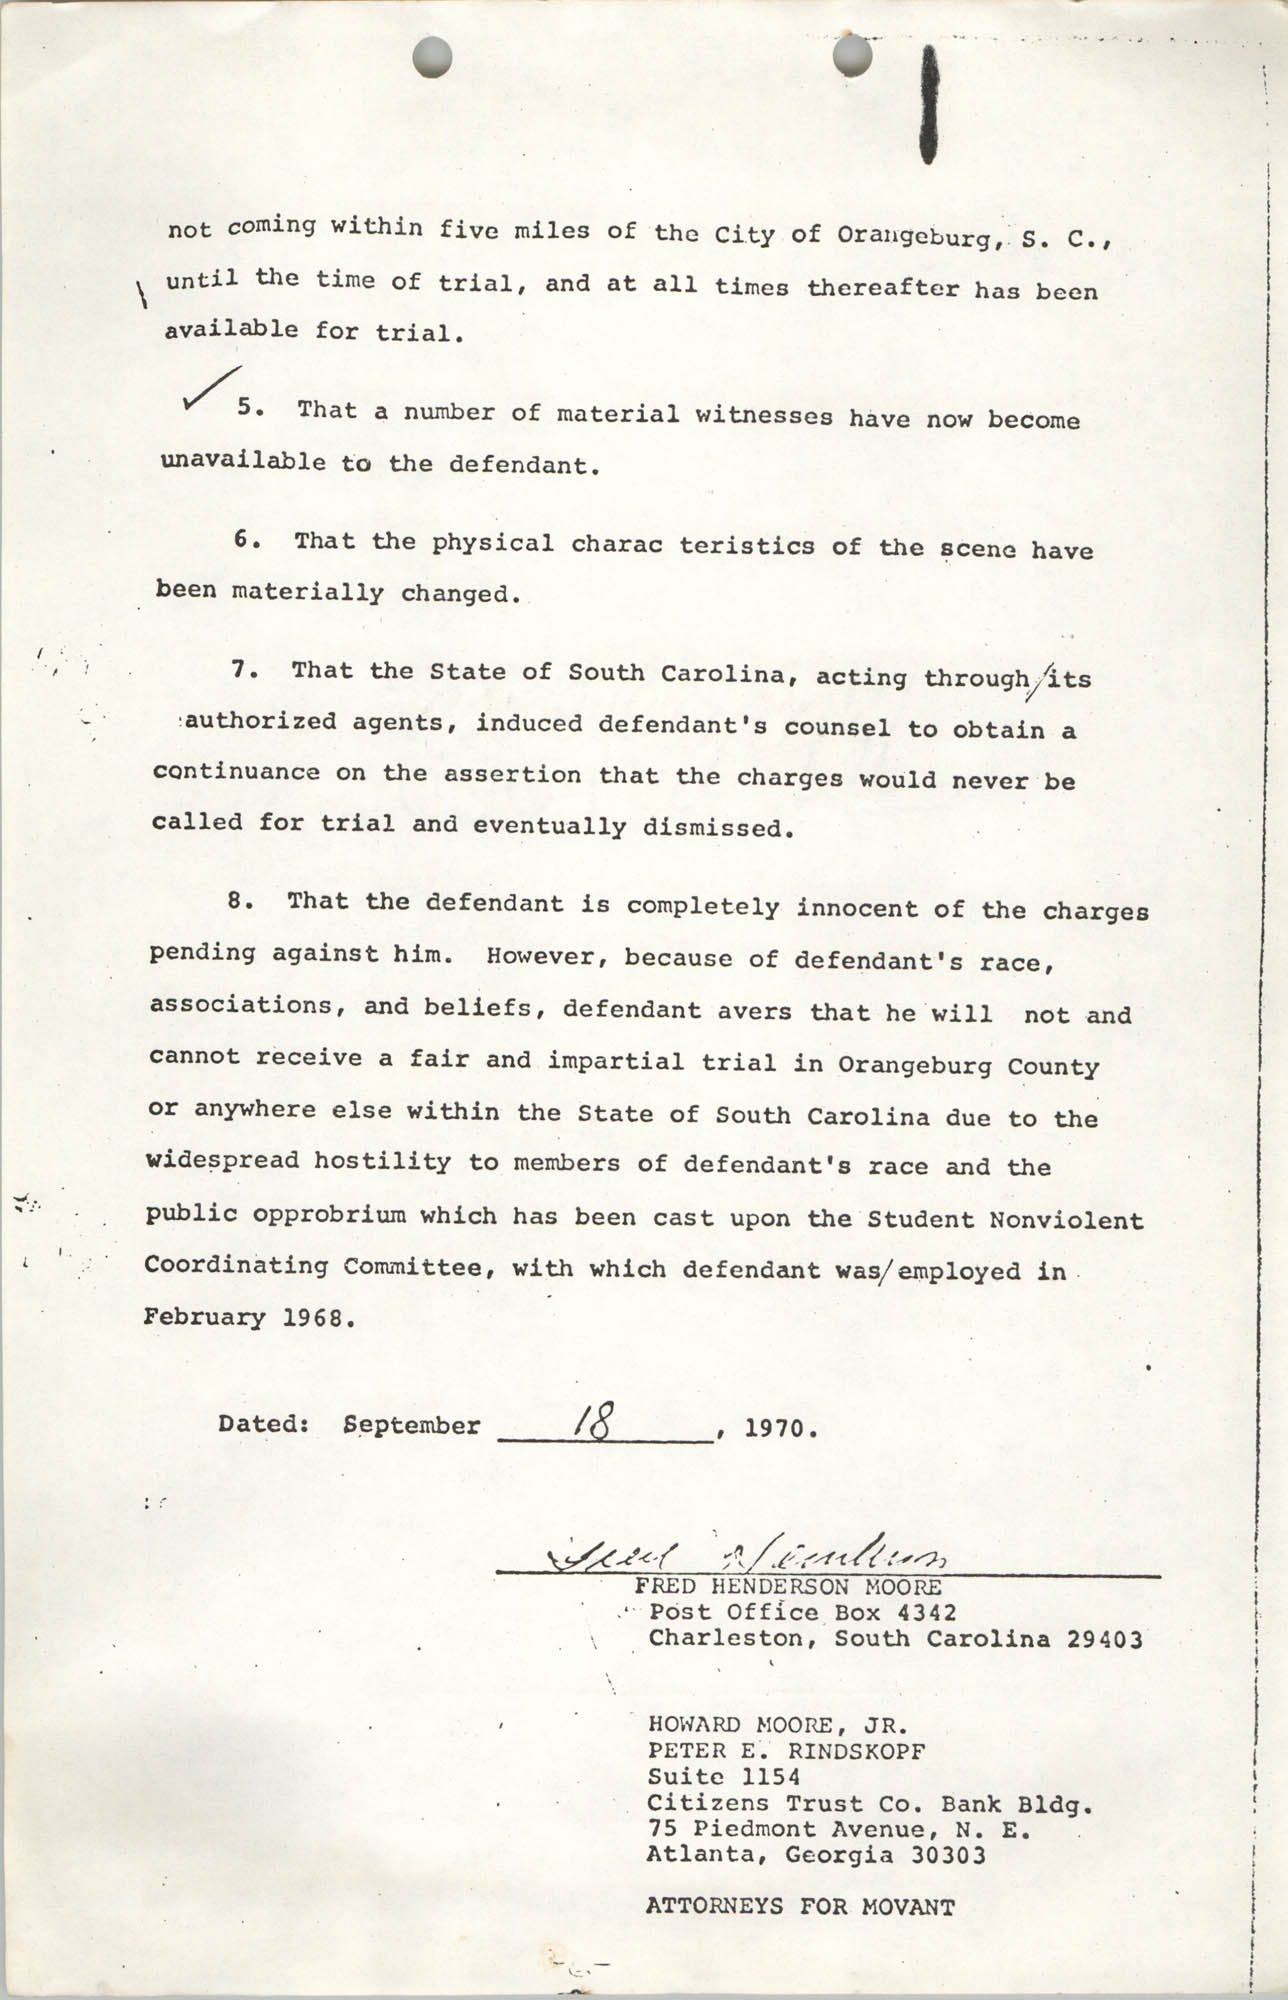 Appeal from Orangeburg County, The State against Cleveland Louis Sellers, Jr., Volume I, Page 6